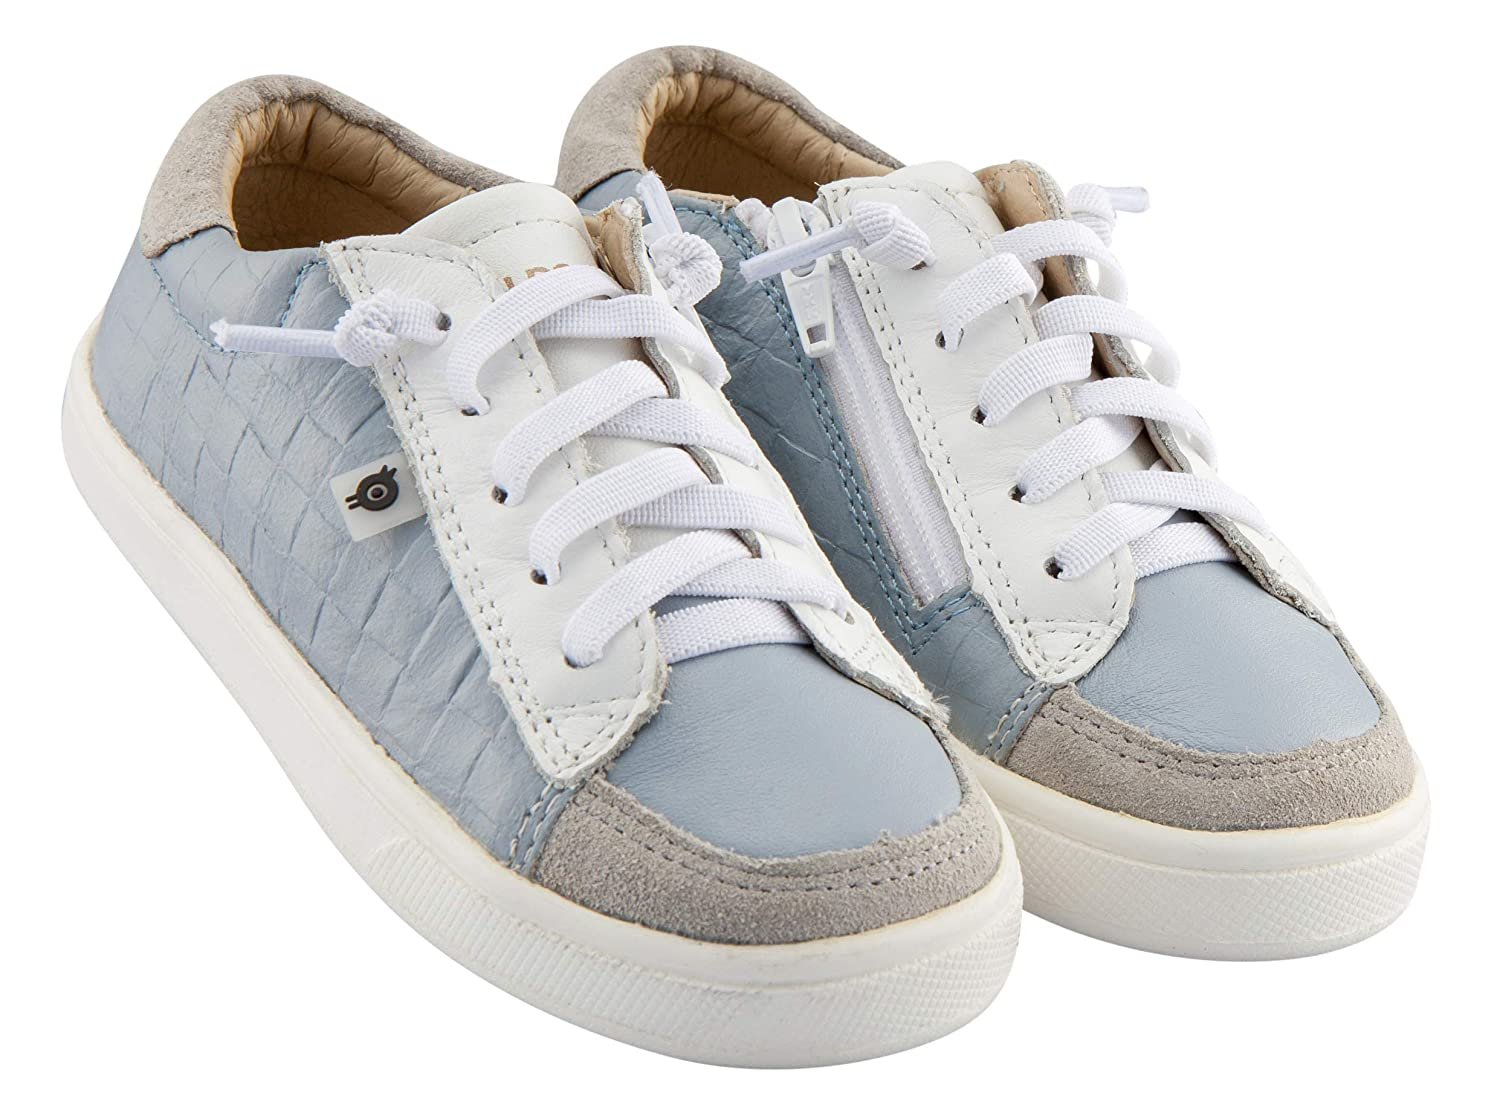 Old Soles Boys and Girls Department Shoe Leather Sneakers